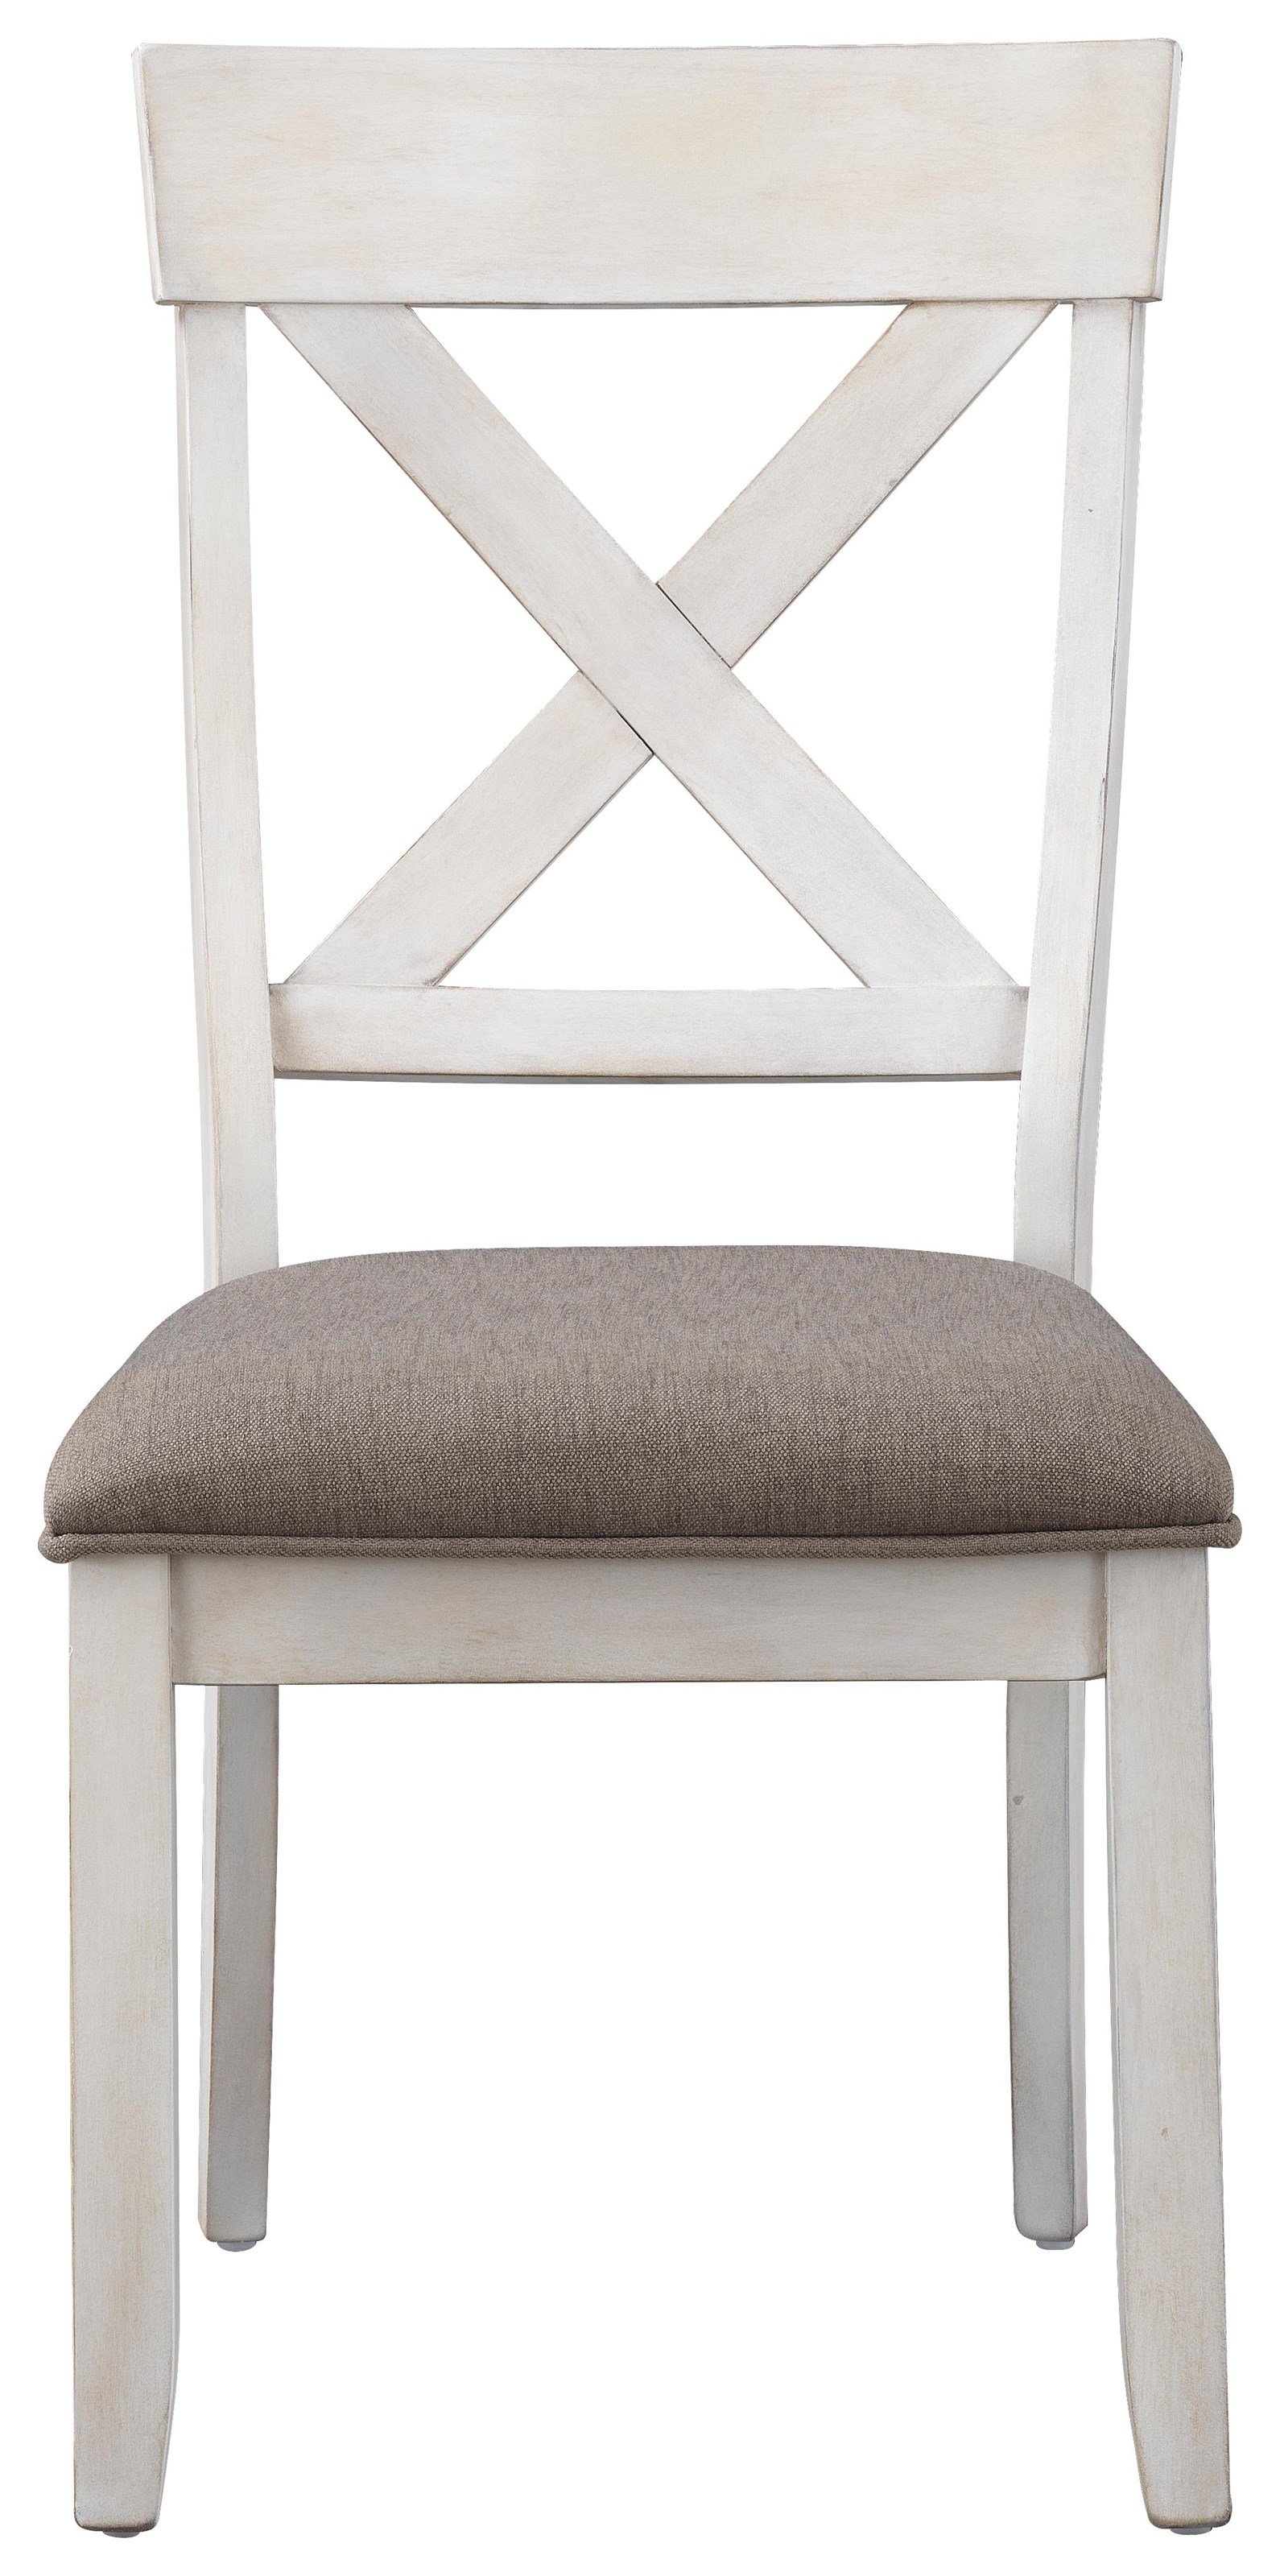 Bar Harbor II Dining Chair by Coast to Coast Imports at HomeWorld Furniture